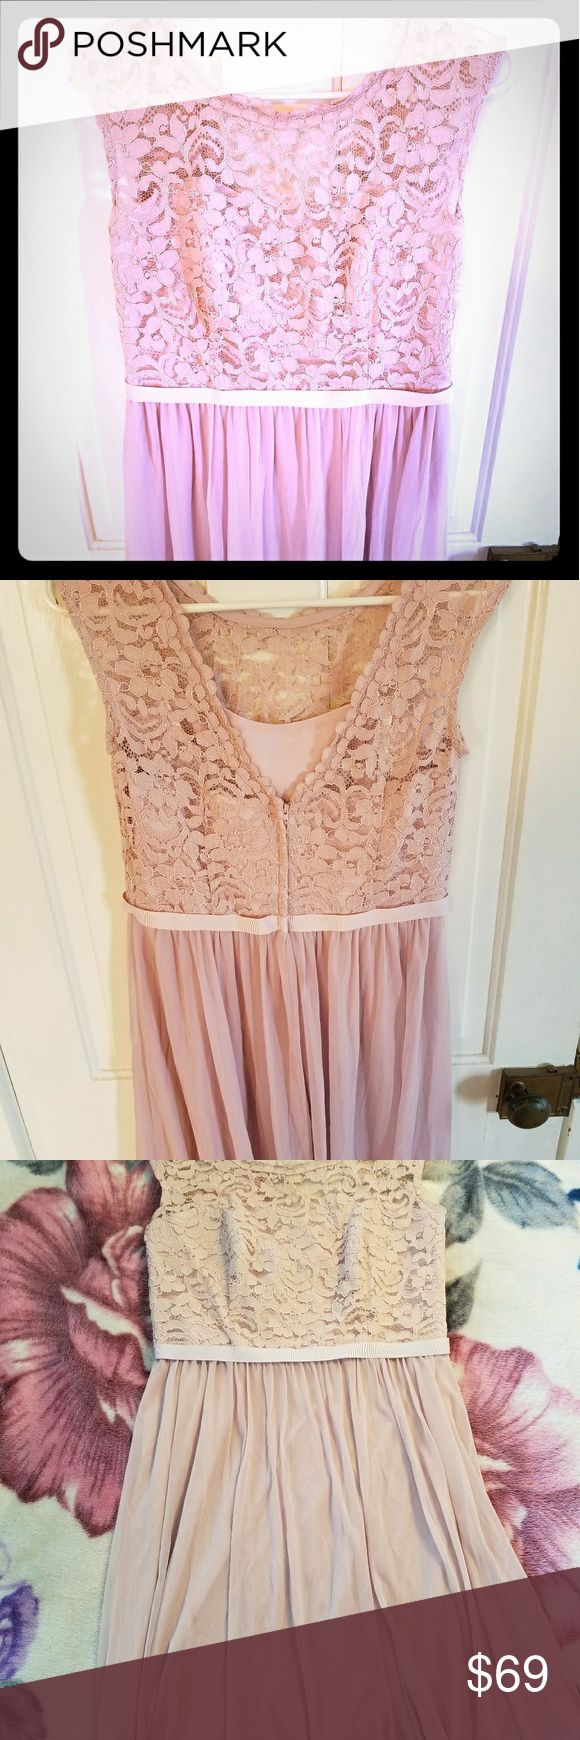 Lacy Cameo Bridesmaid Dress Delicate, feminine, flowy, lace detailed bridesmaid dress. Dusty rose/cameo color. Almost a greyish pink. Hits just above the knee. Only worn once. New with tags. David's Bridal Dresses Wedding